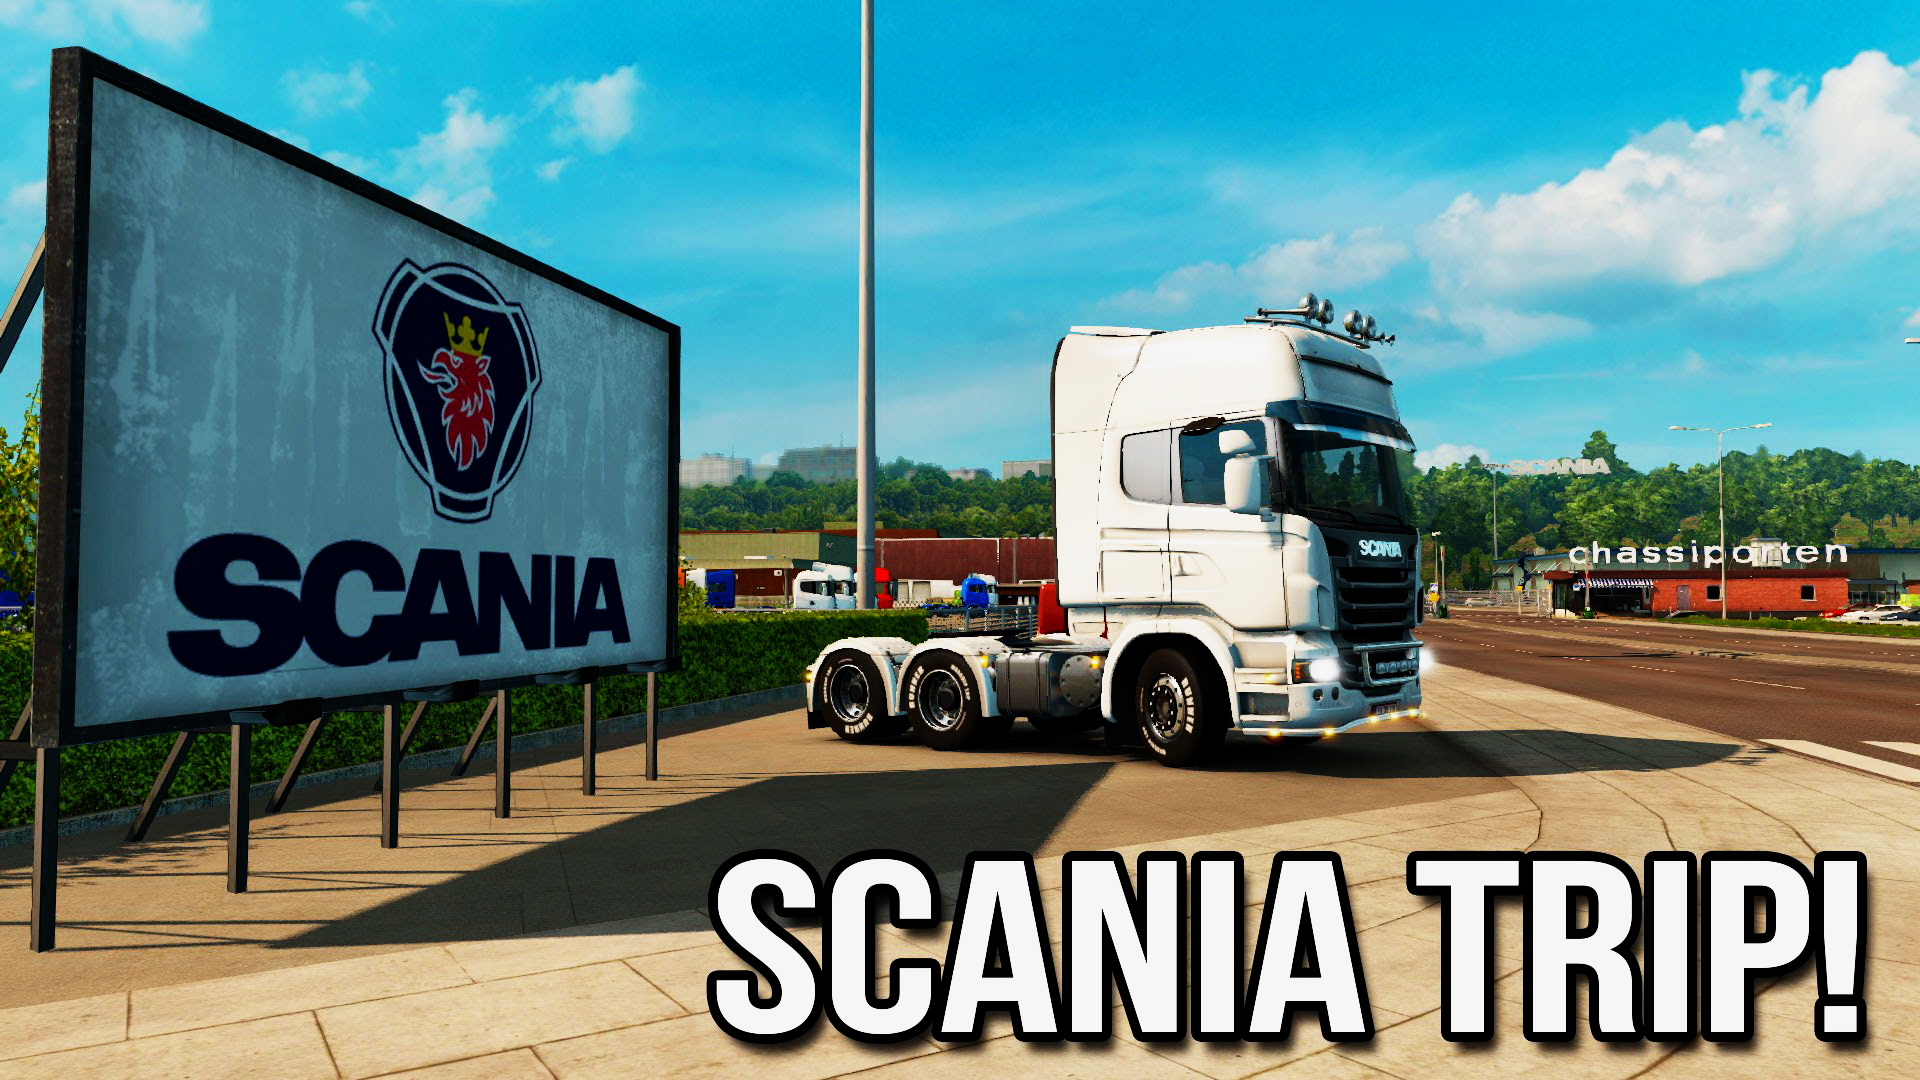 Scania Trip! - YETD and Scandinavian DLC